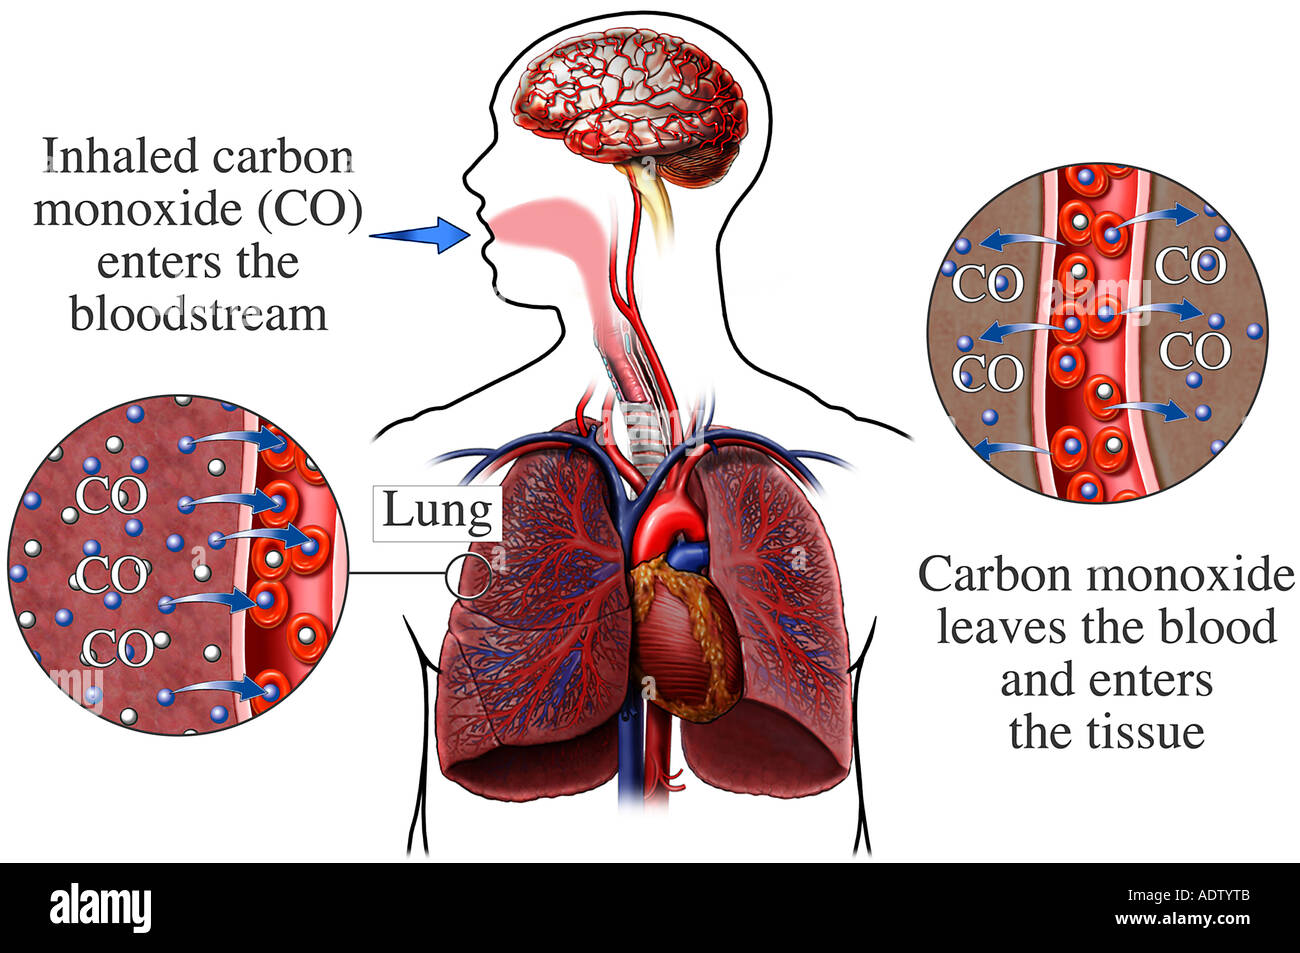 Gas exchange of the respiration stock photos gas exchange of the lungs carbon monoxide gas poisoning stock image ccuart Gallery